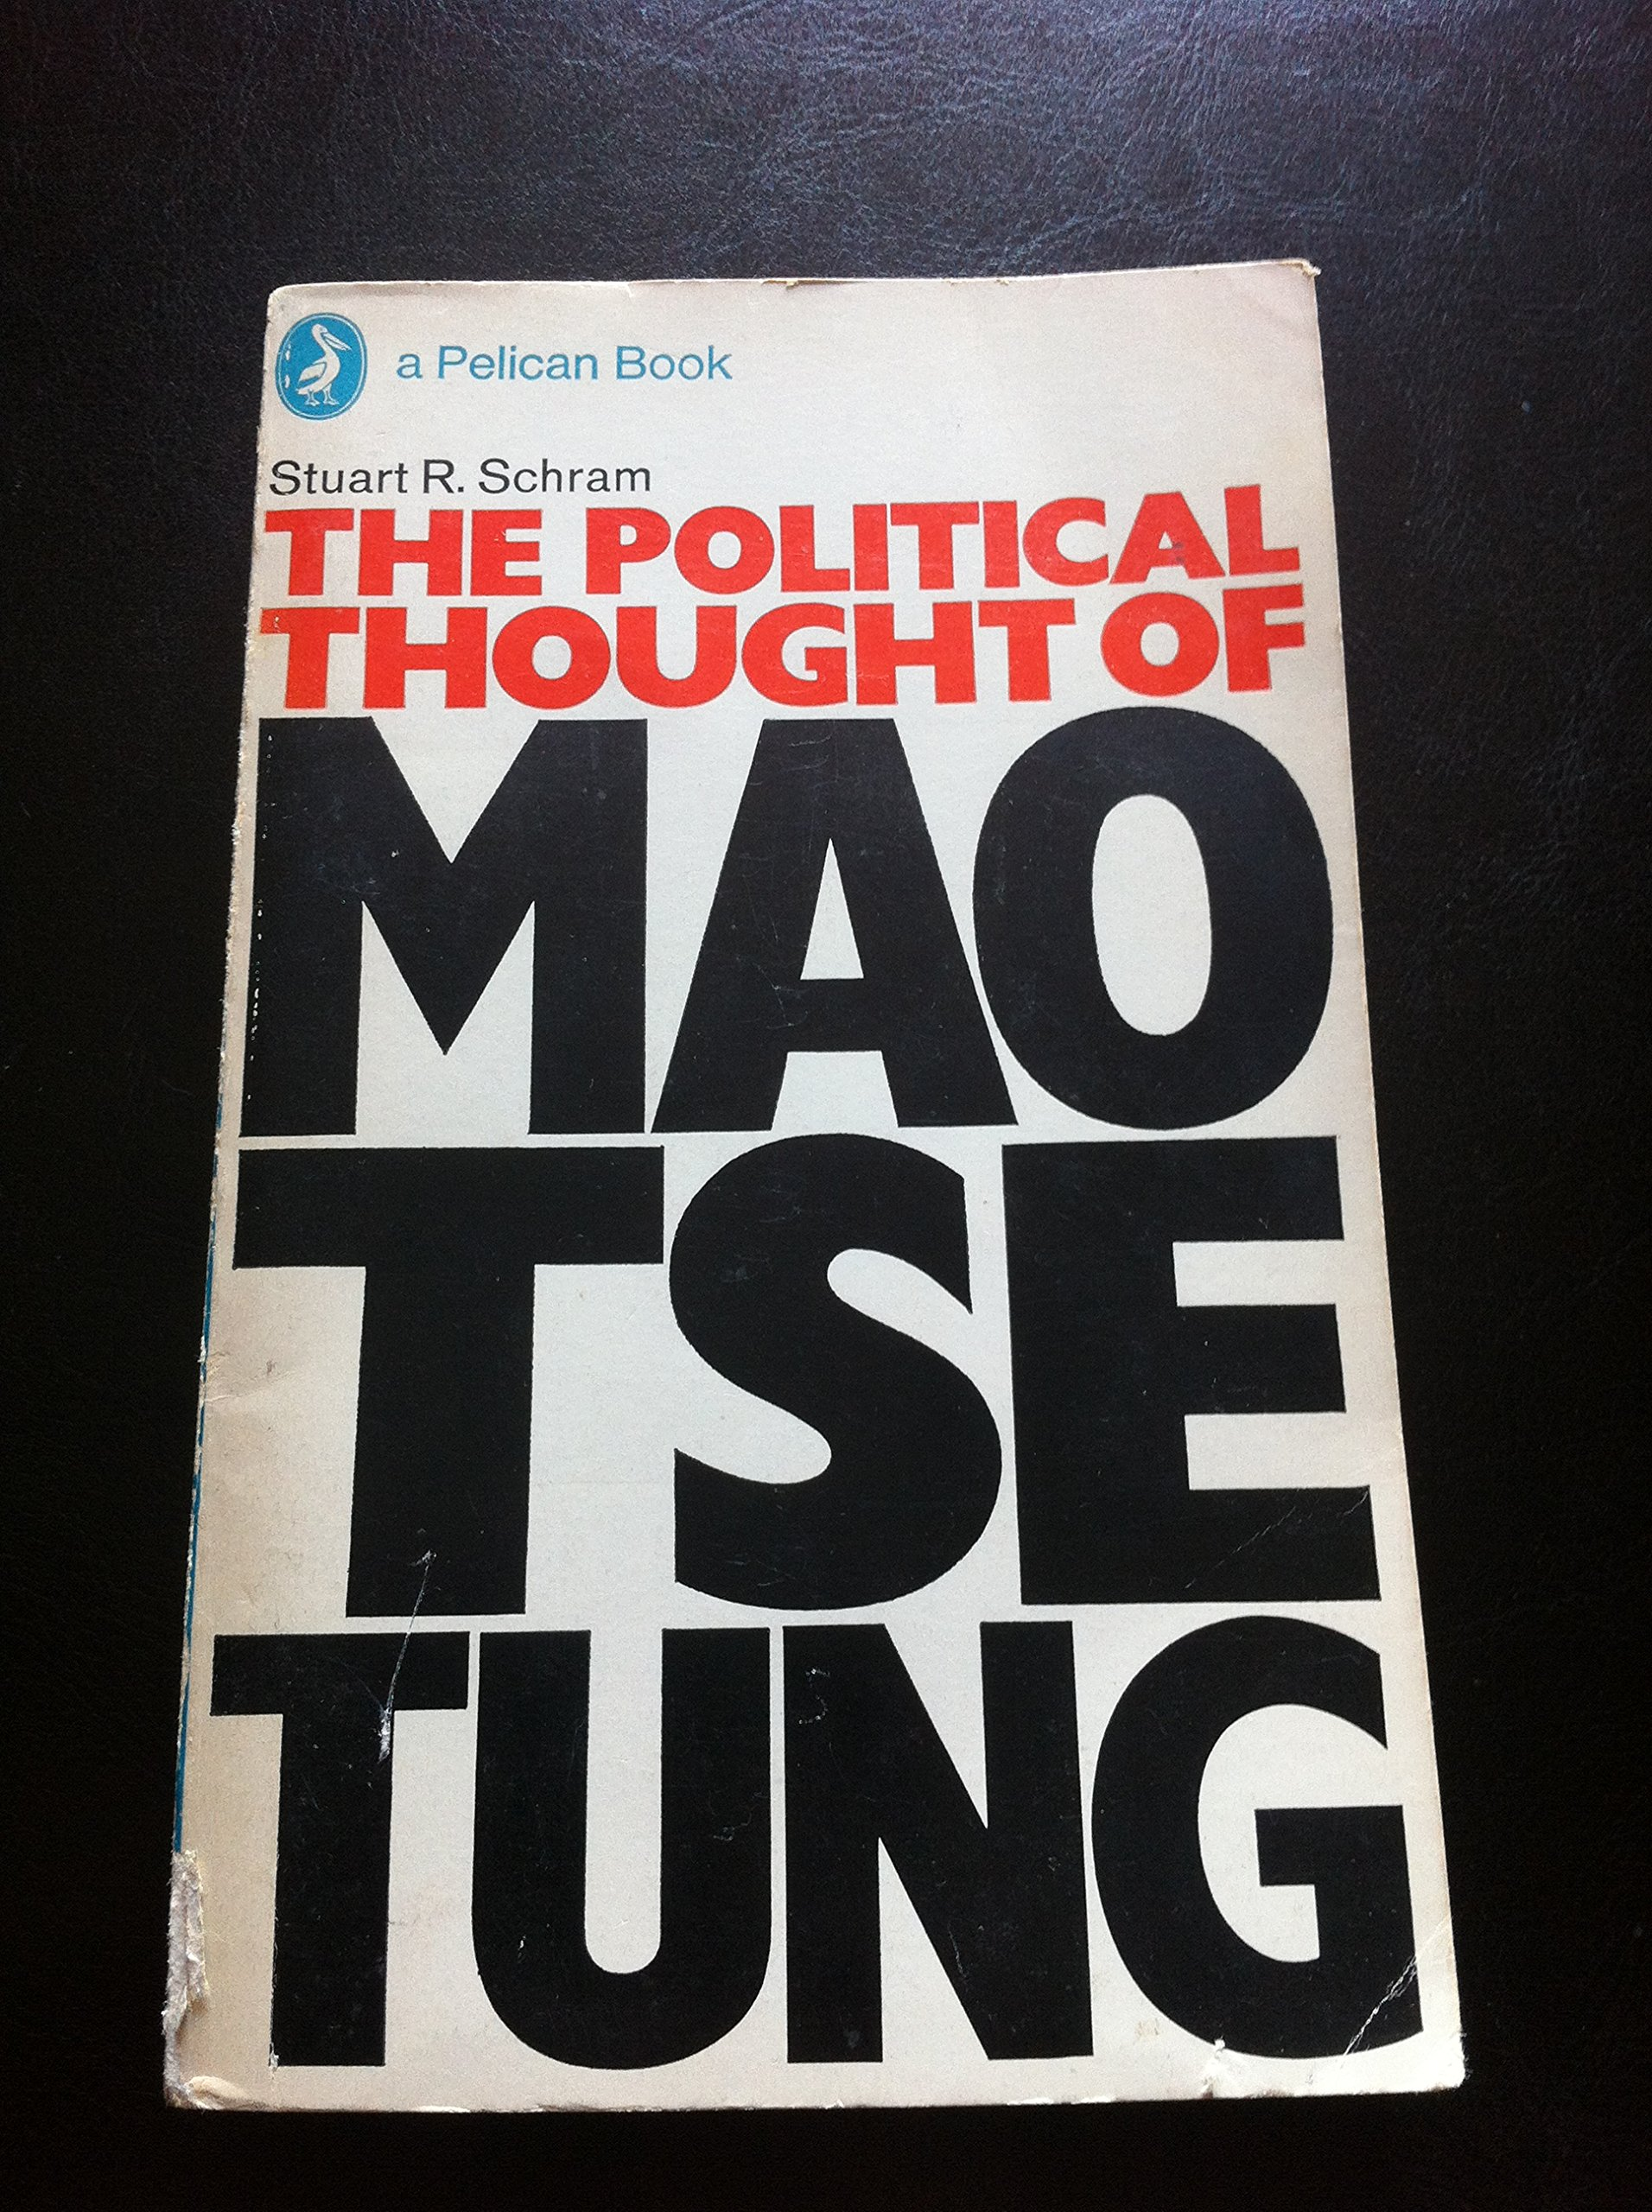 Buy The Political Thought Of Mao Tse Tung Pelican Book Baby Music Cellular Phone Online At Low Prices In India Reviews